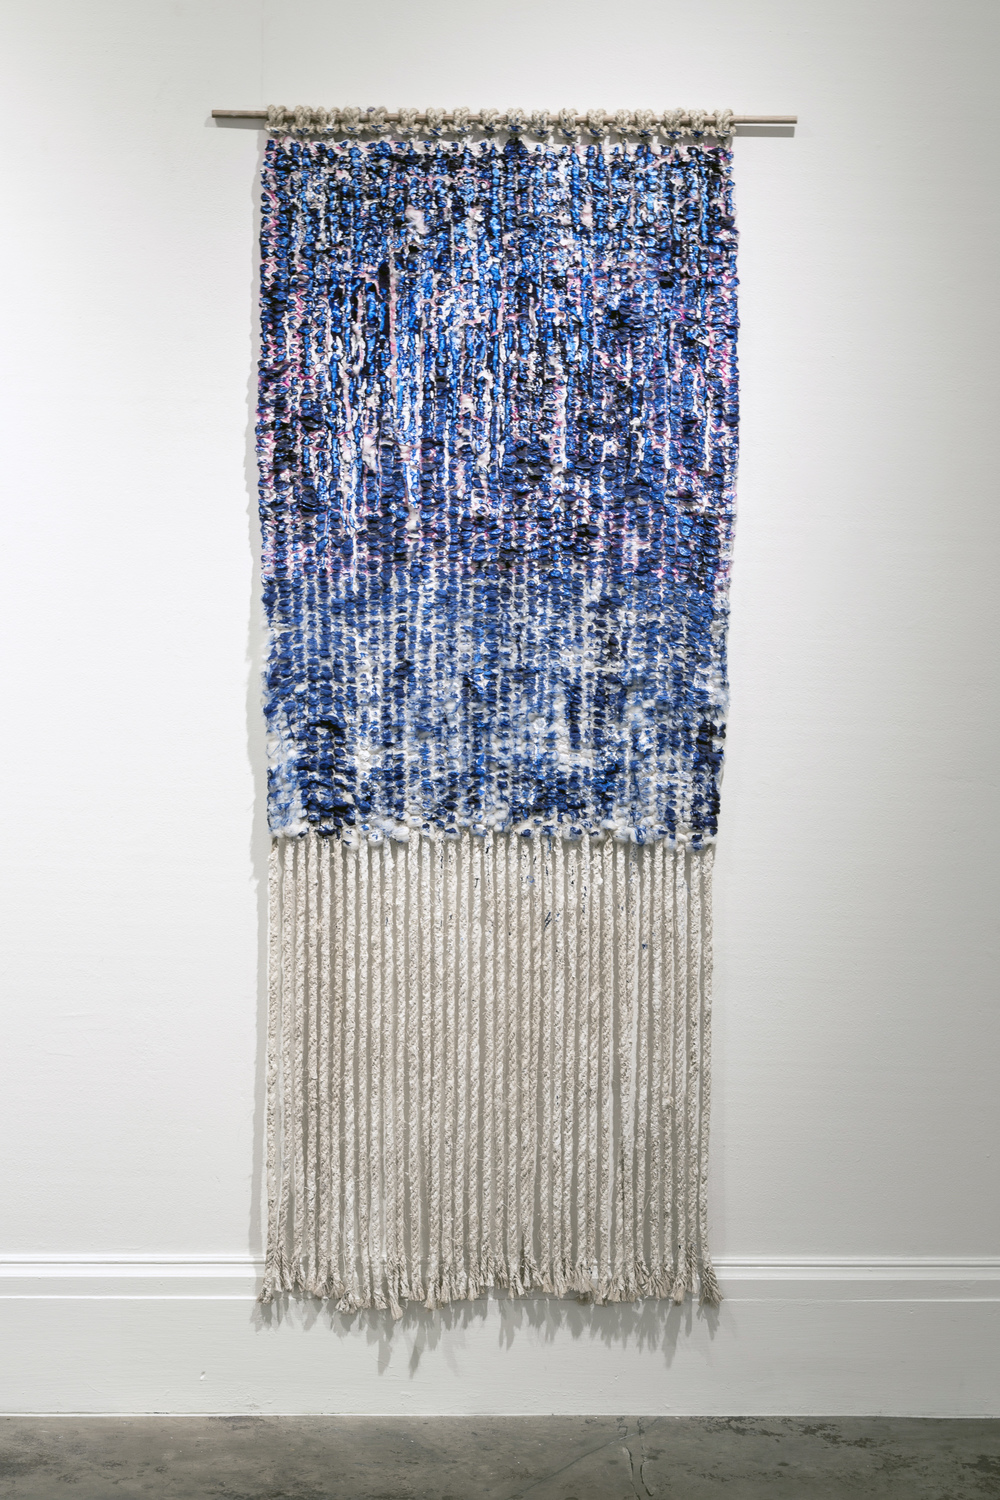 Painted Weaving, 2014